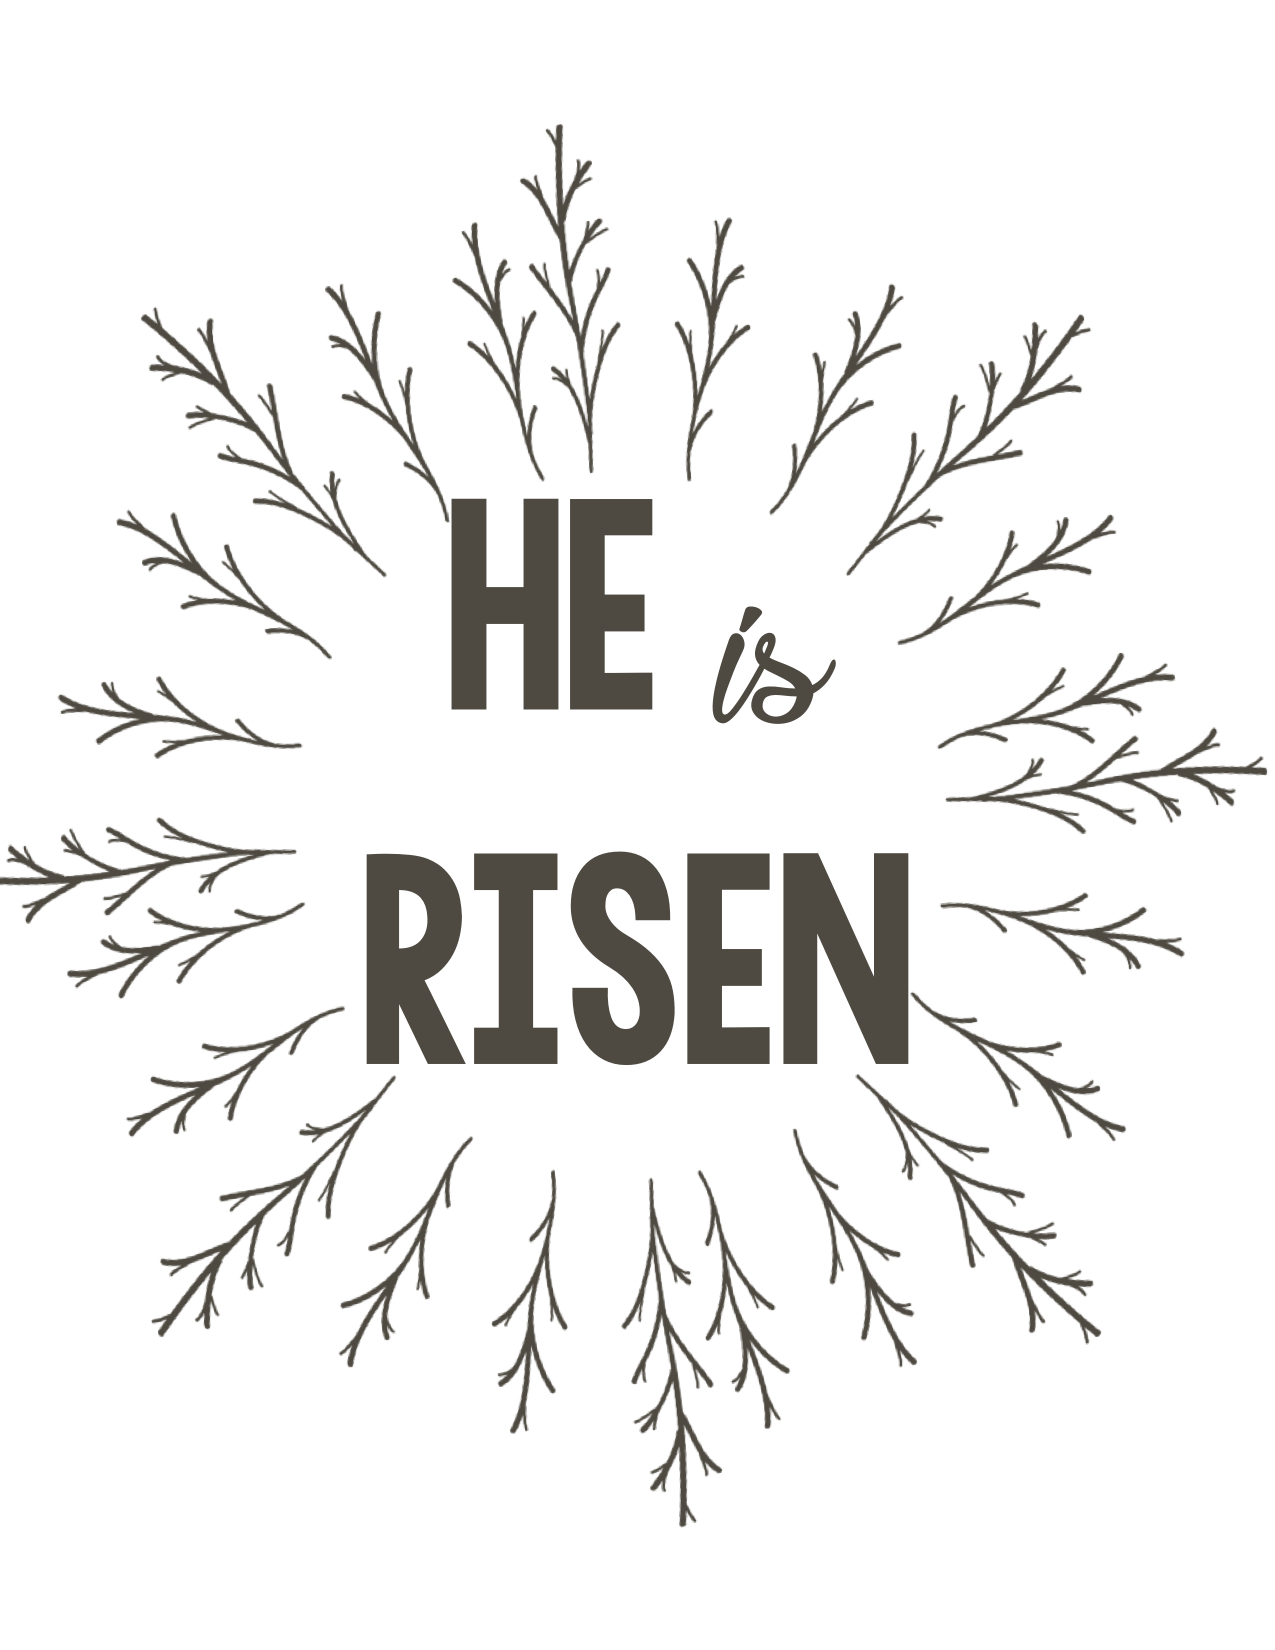 He Has Risen Images Free